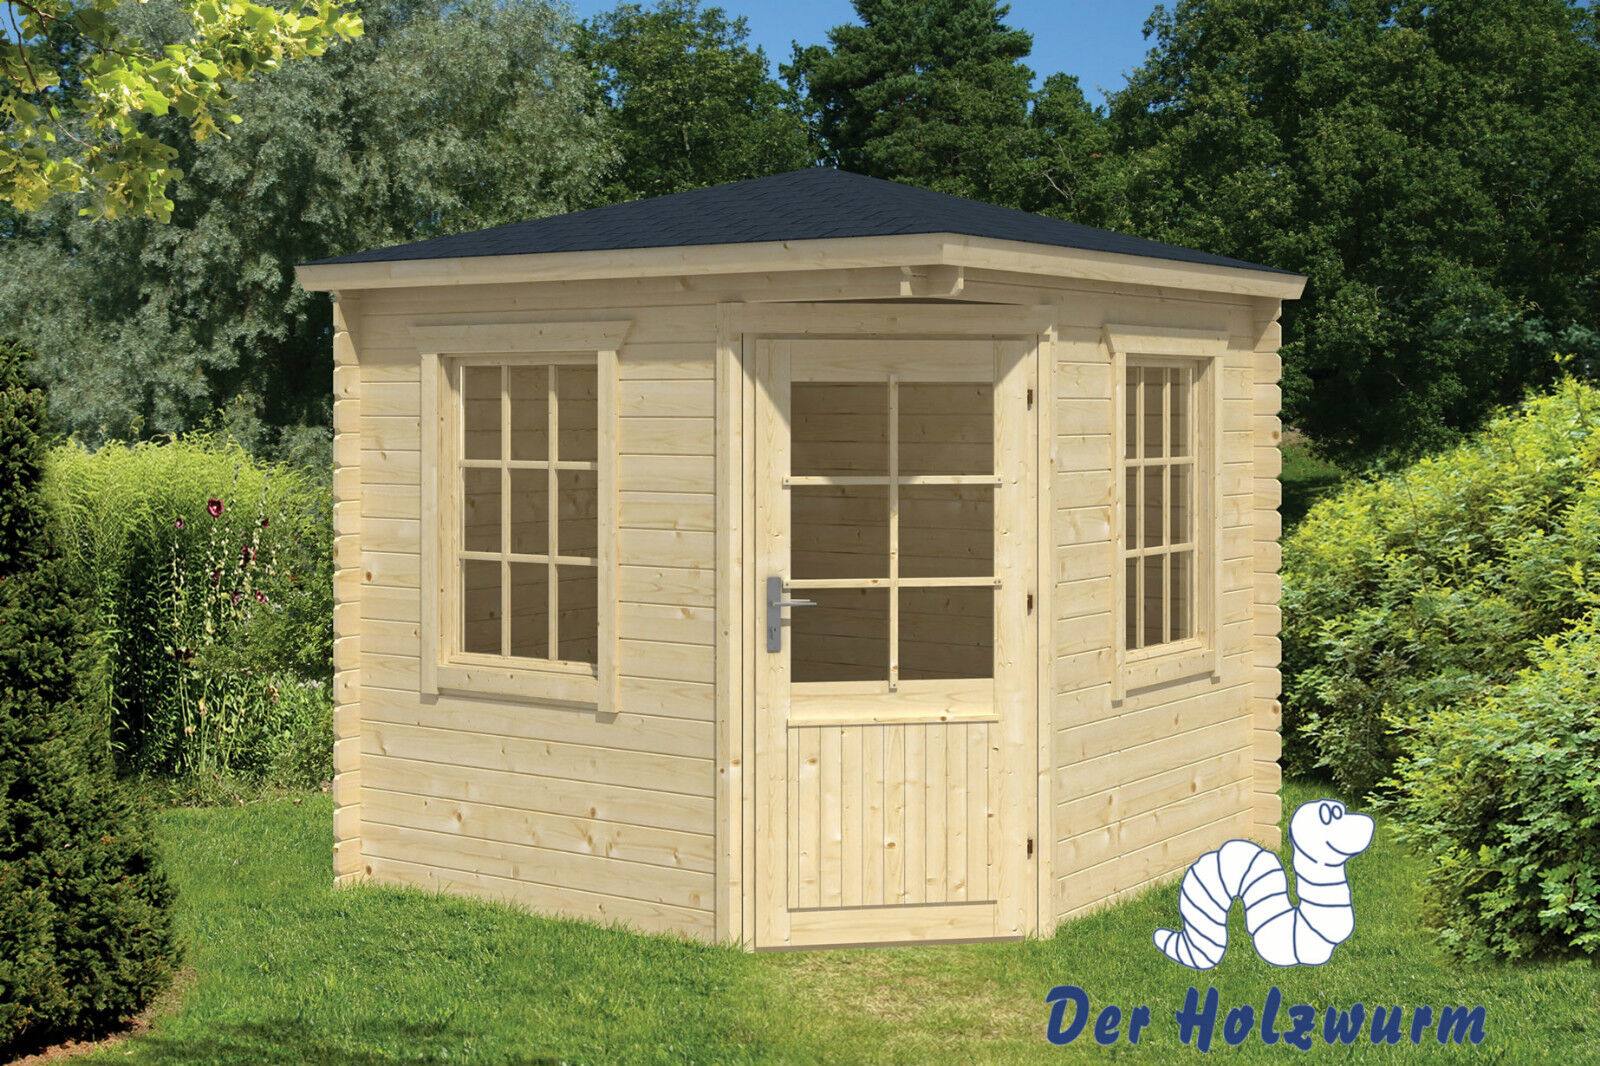 gartenhaus jos blockhaus 250x250 cm holzhaus 28mm ger tehaus pavillon holz neu ebay. Black Bedroom Furniture Sets. Home Design Ideas